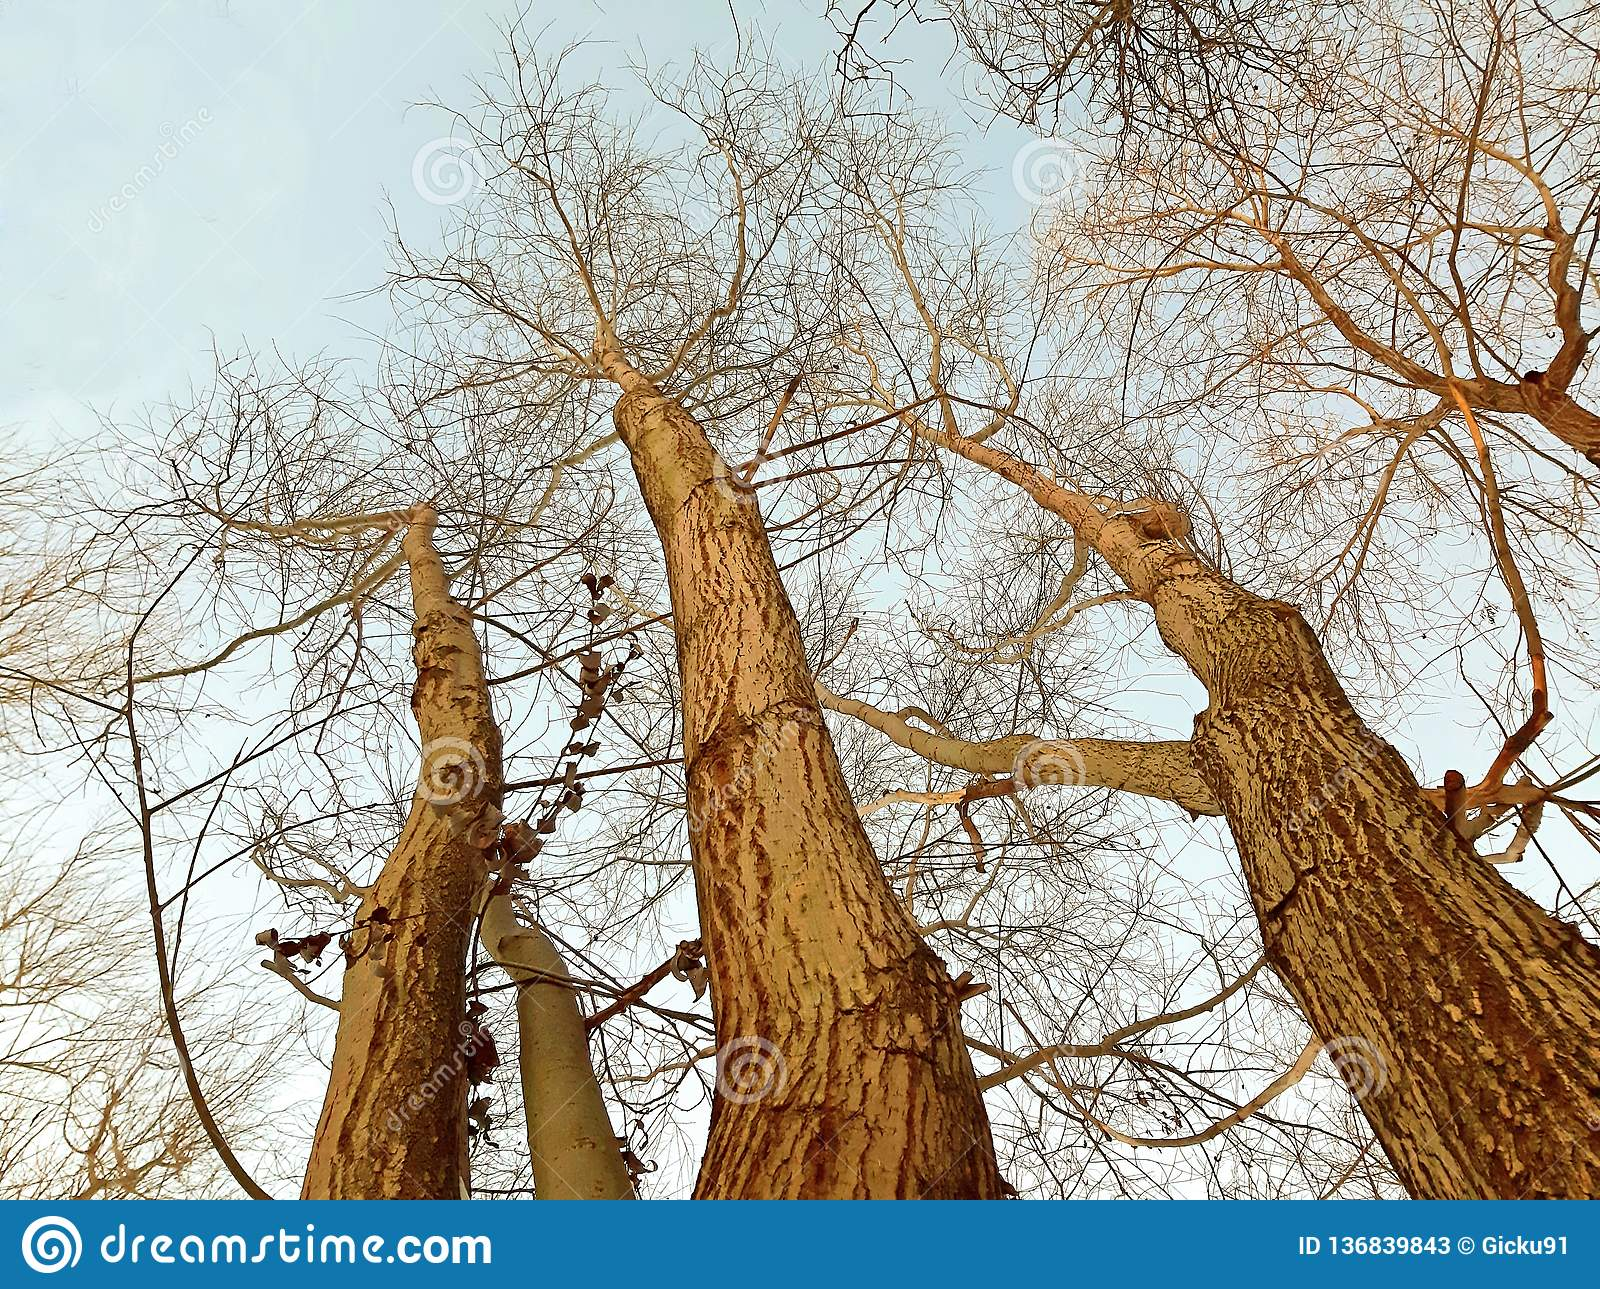 Elm trees, branches on clear sky in winter